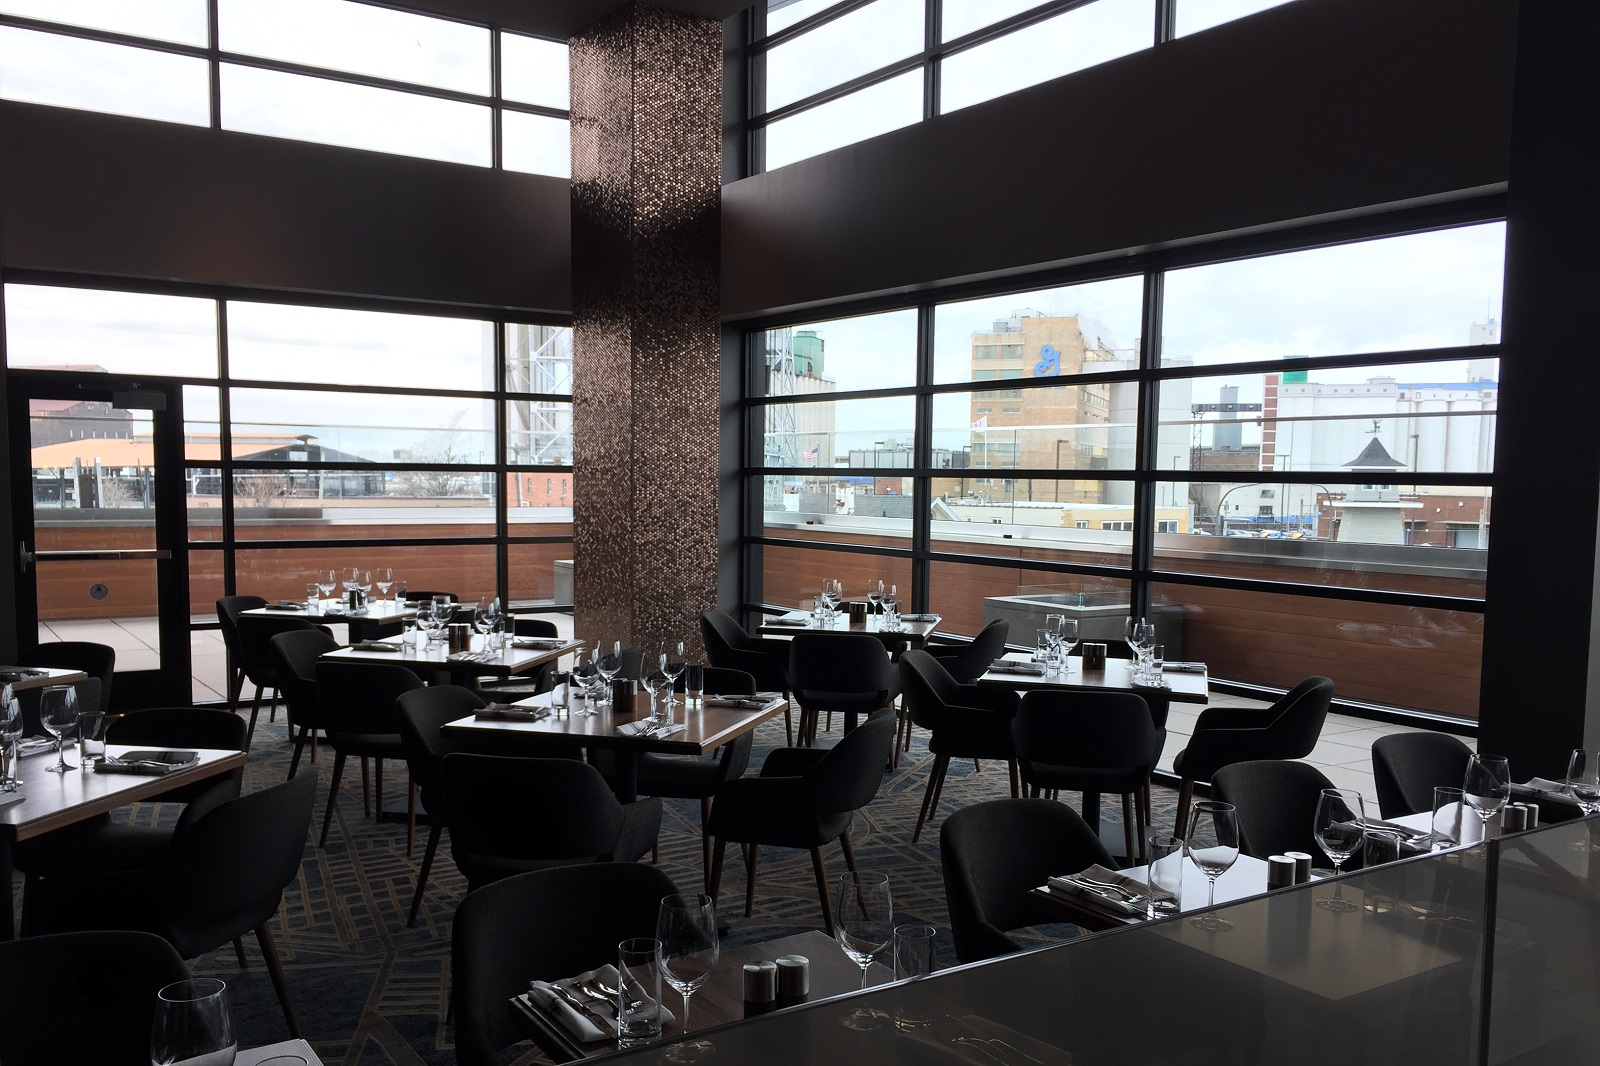 Decorating western door steakhouse images : Seneca Buffalo Creek Casino's WD Bar and Grille shows flair – The ...